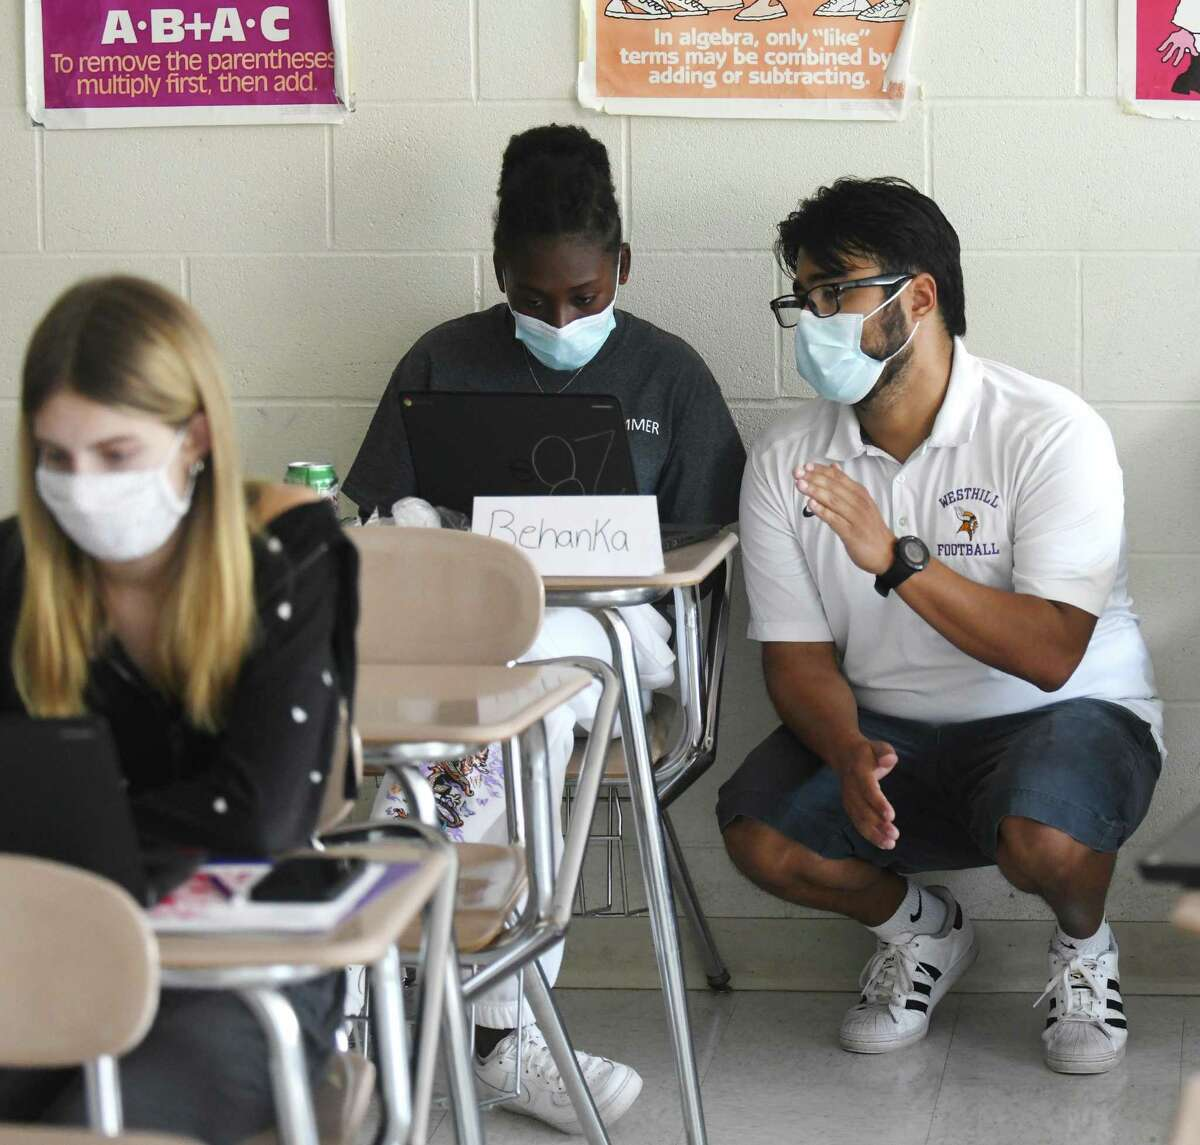 Instructor Owen Sandoval helps rising senior Behanka Adonis fine tune her college application personal statement at the College Prep Academy at Westhill High School in Stamford, Conn. Wednesday, Aug. 11, 2021. The three day program helps rising seniors find the right college fit and teaches tips on how to apply, write an essay, apply for financial aid, and more.